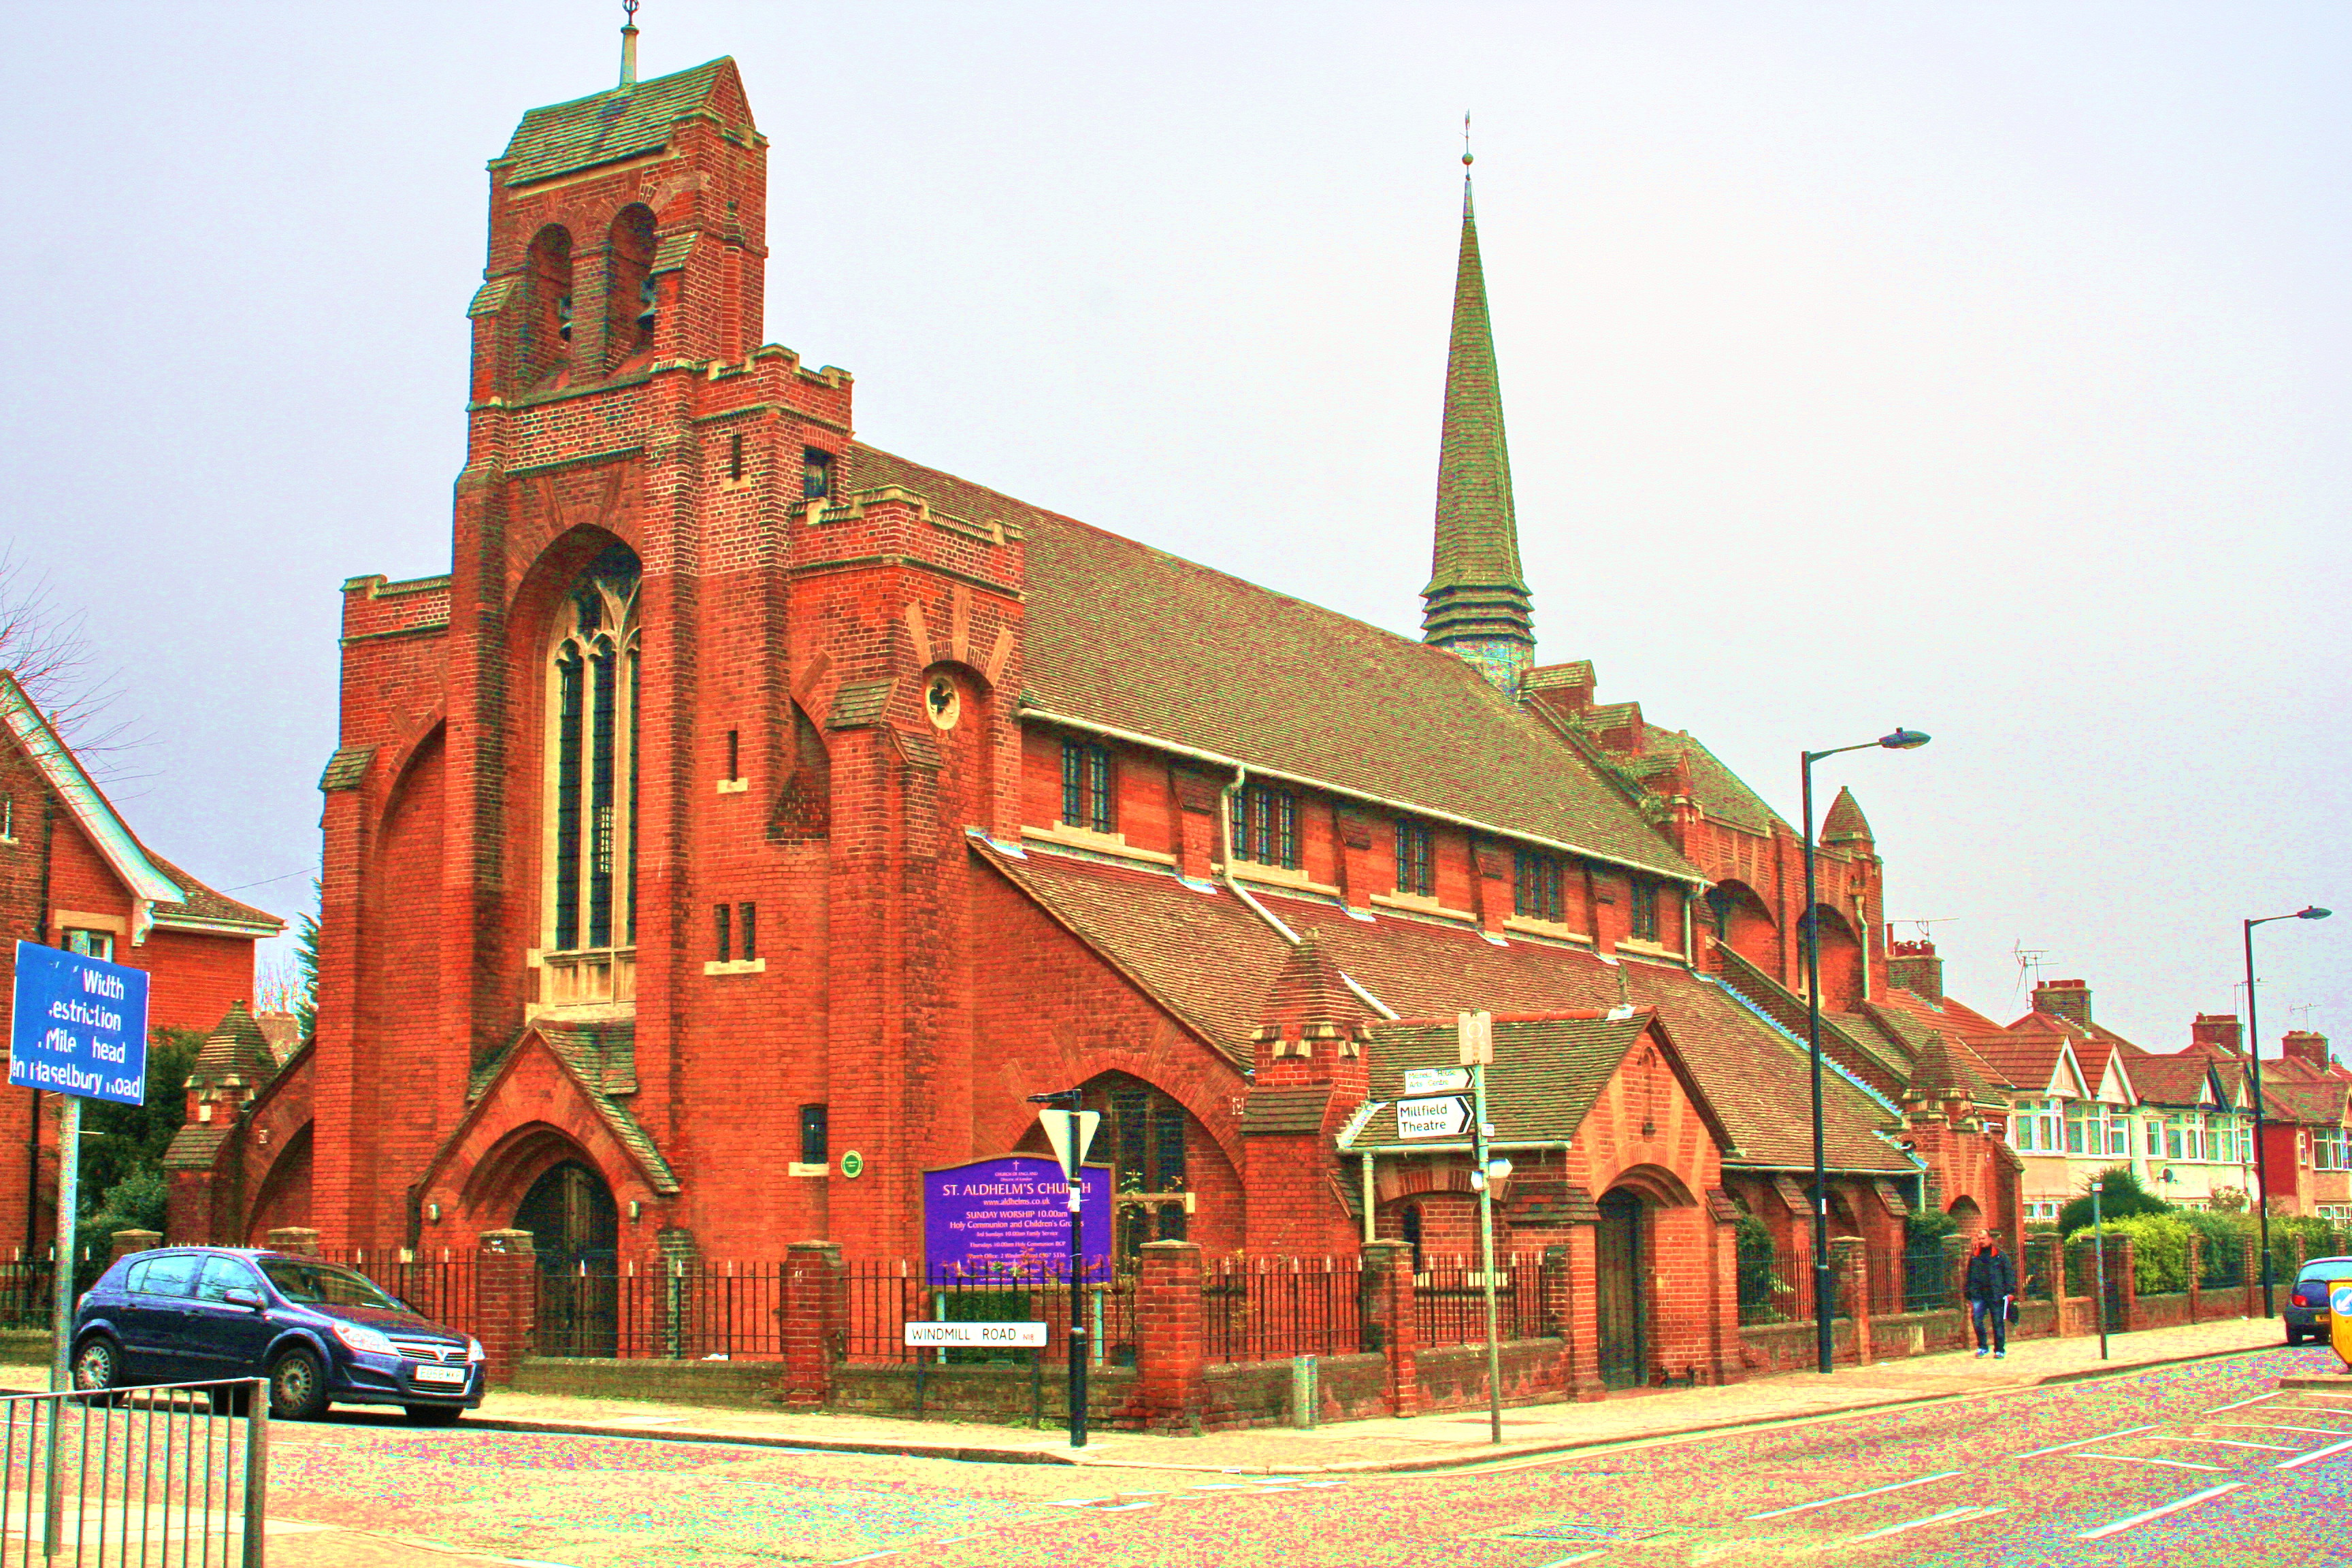 St Aldhelm's Church Is On The Corner Of Silver Street And Windmill on n18